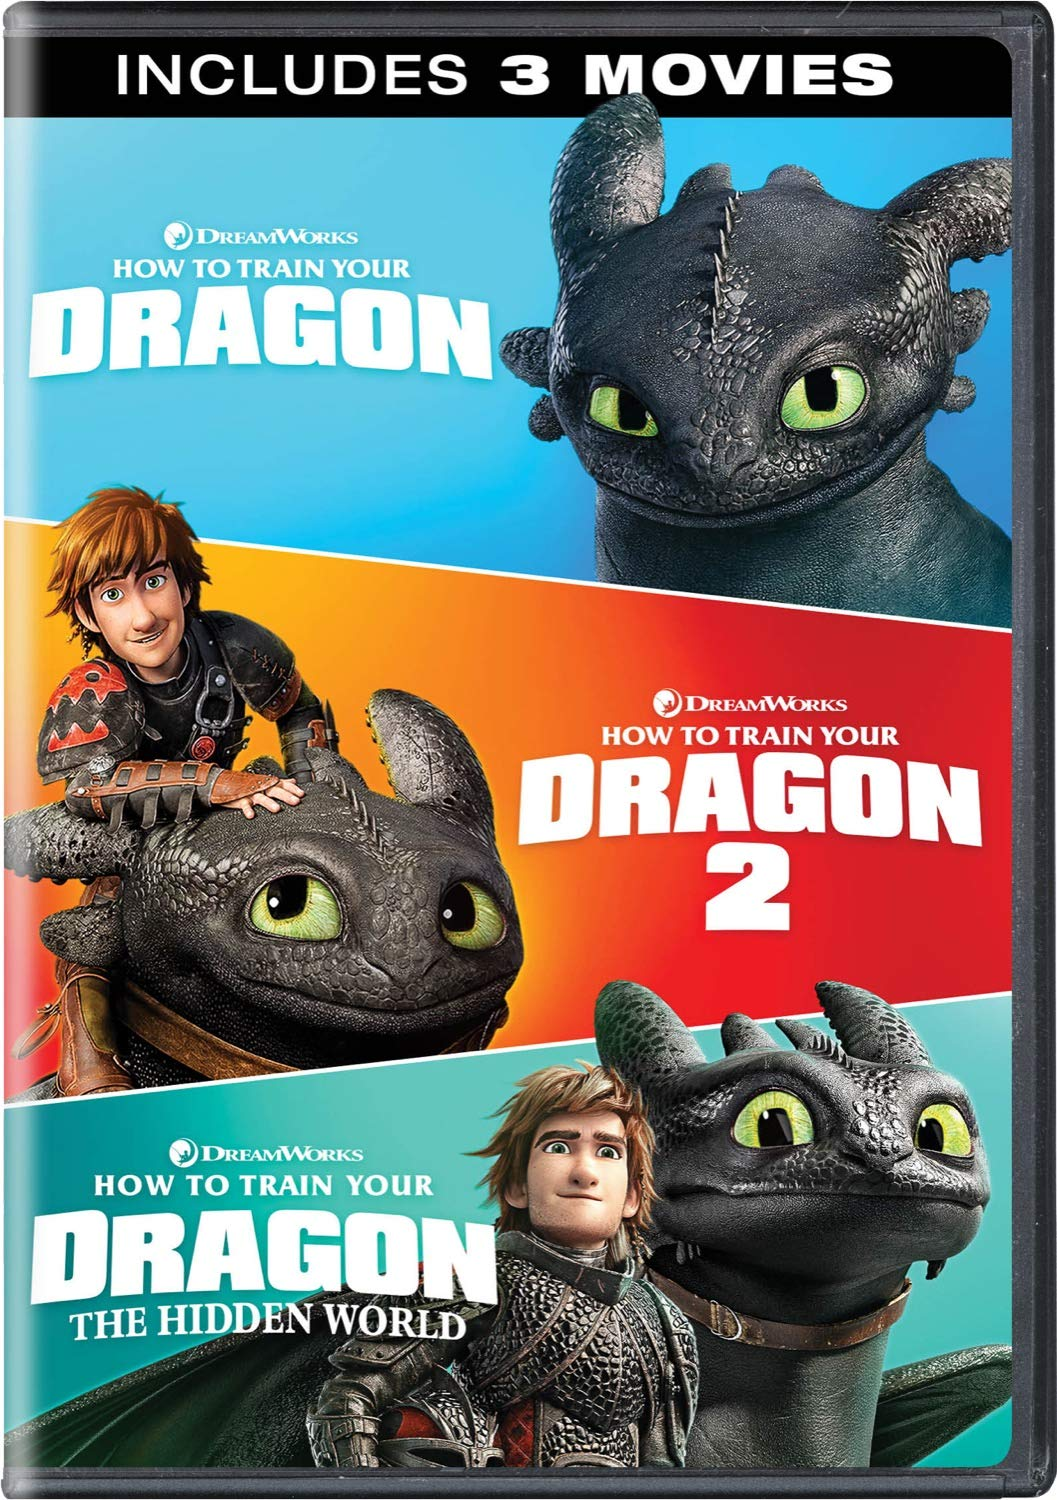 How To Train Your Dragon: 7-Movie Collection: Amazon.de: DVD & Blu-ray